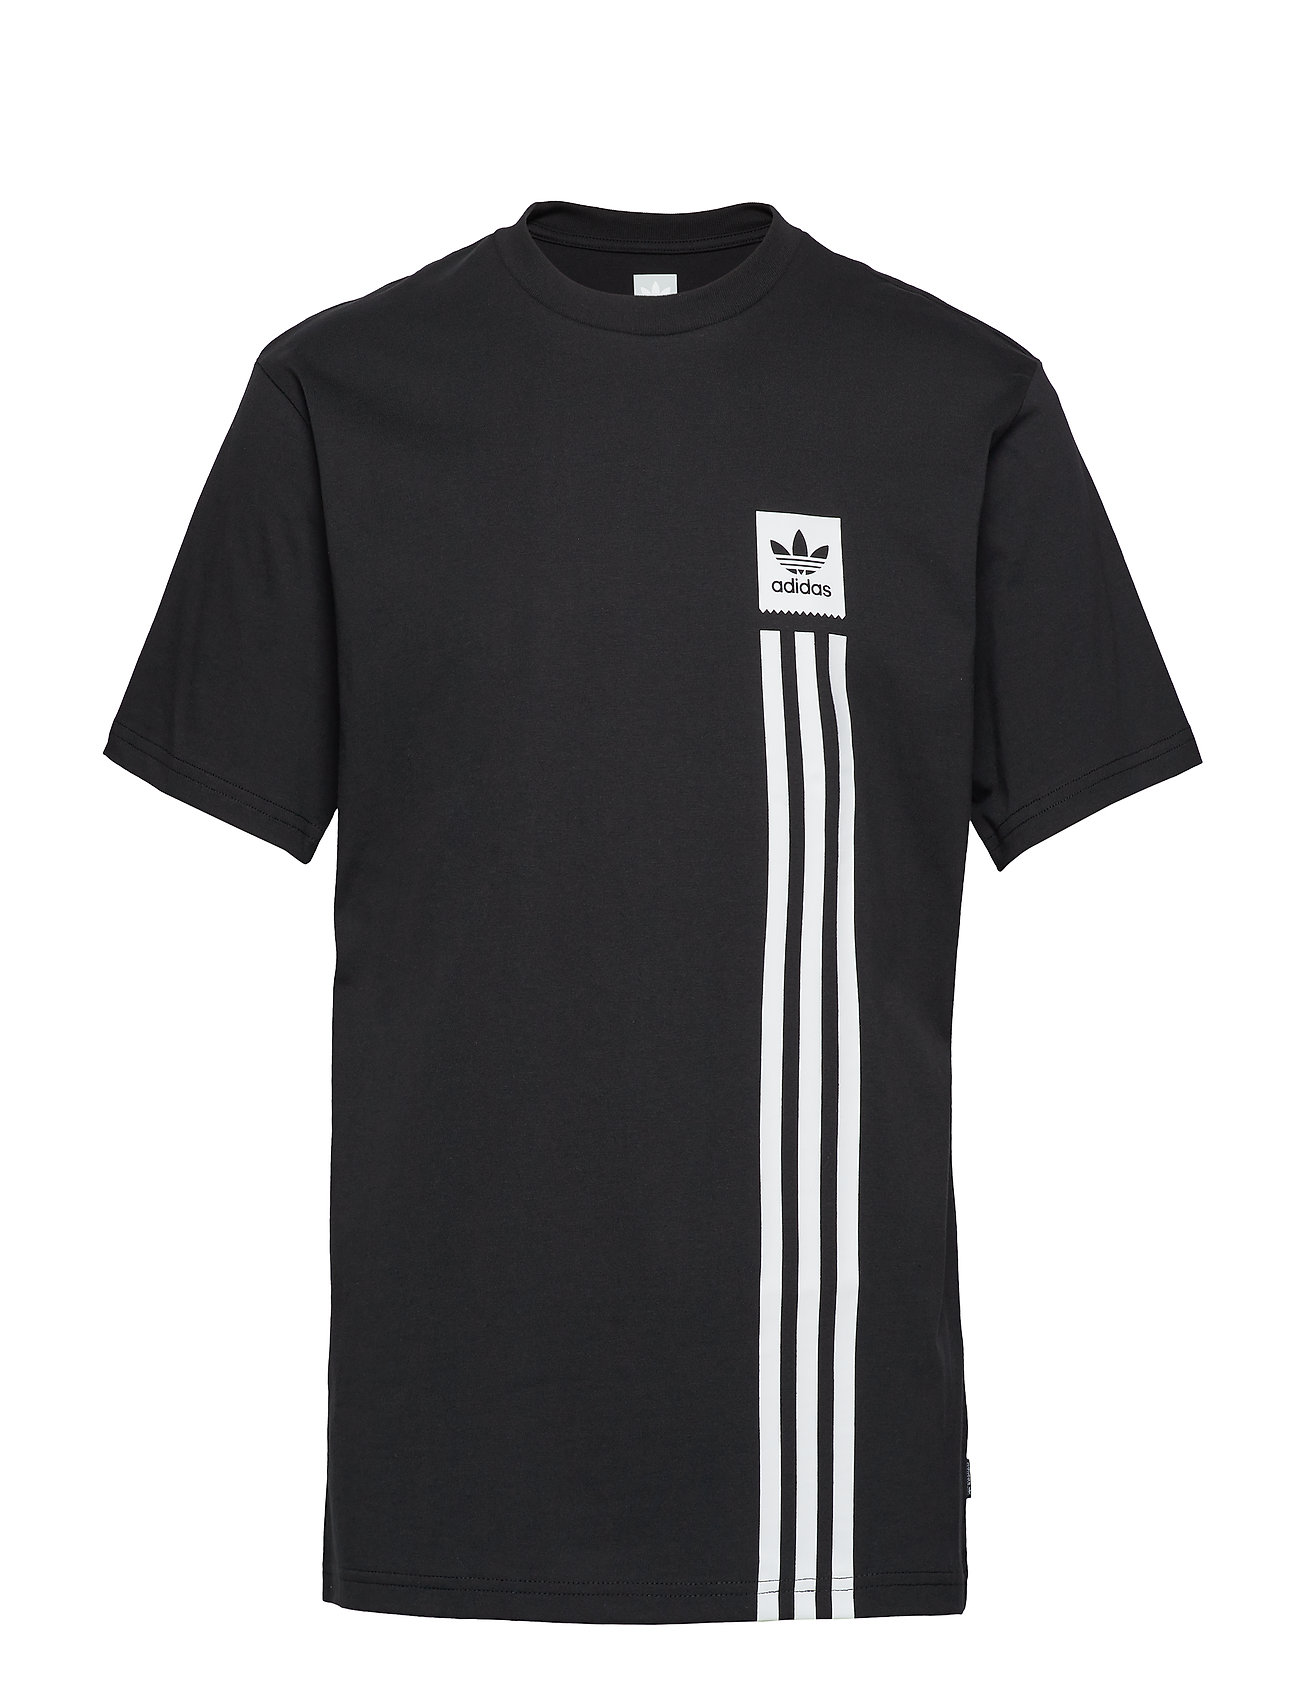 adidas Performance BB PILLAR TEE - BLACK/WHITE